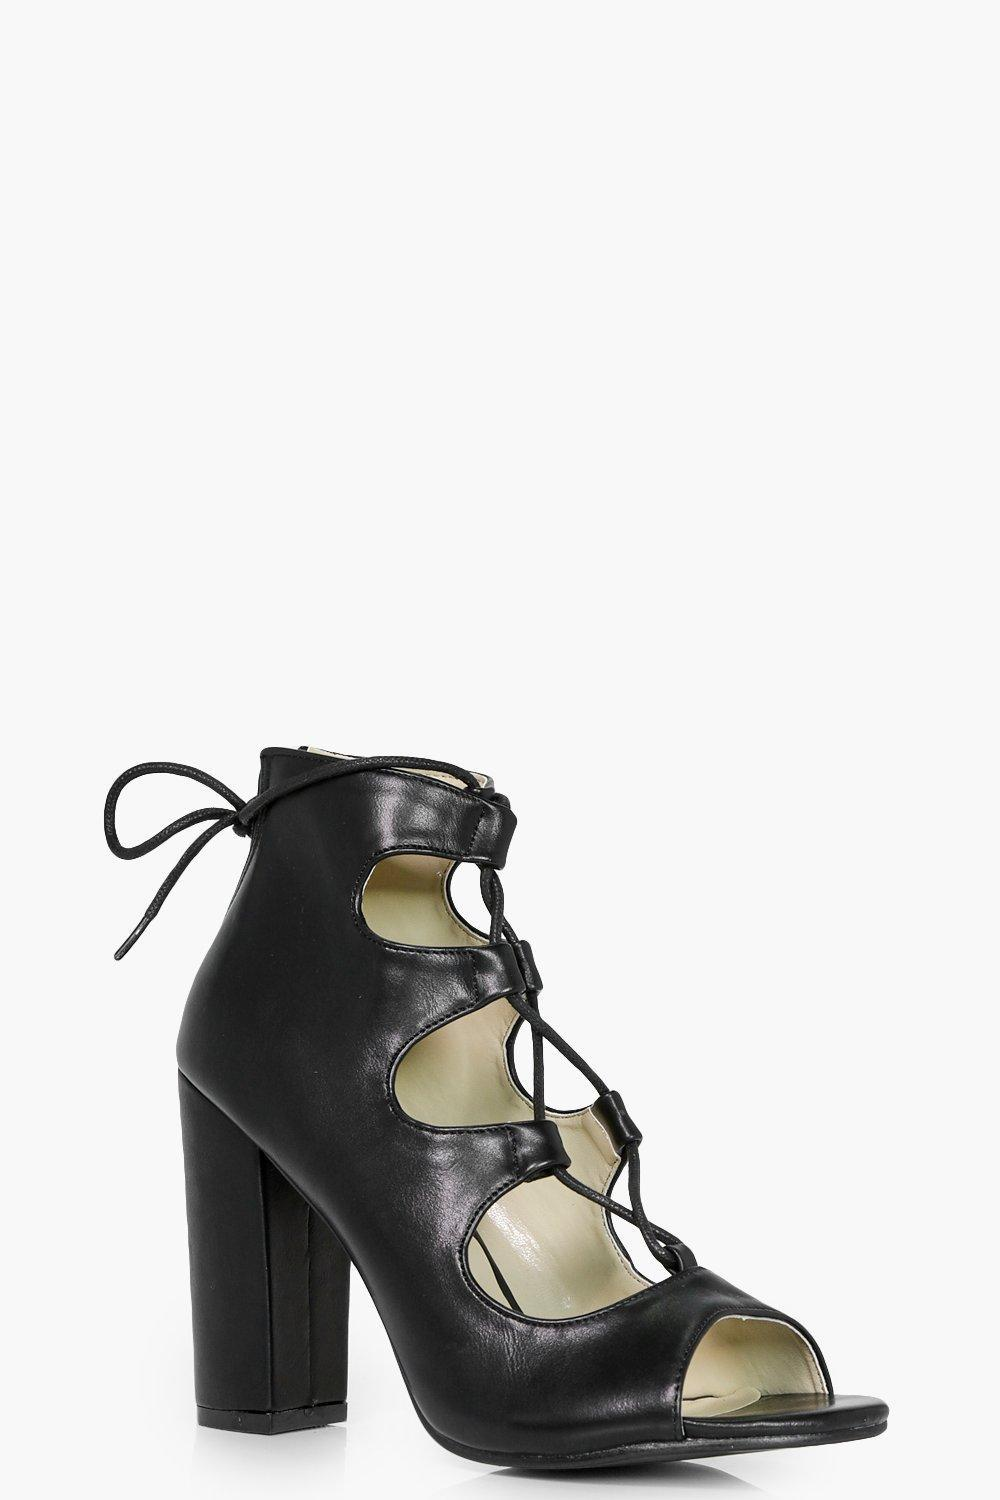 84ce51bf47cf3 Boohoo Ghillie Lace Up Block Heels in Black - Lyst